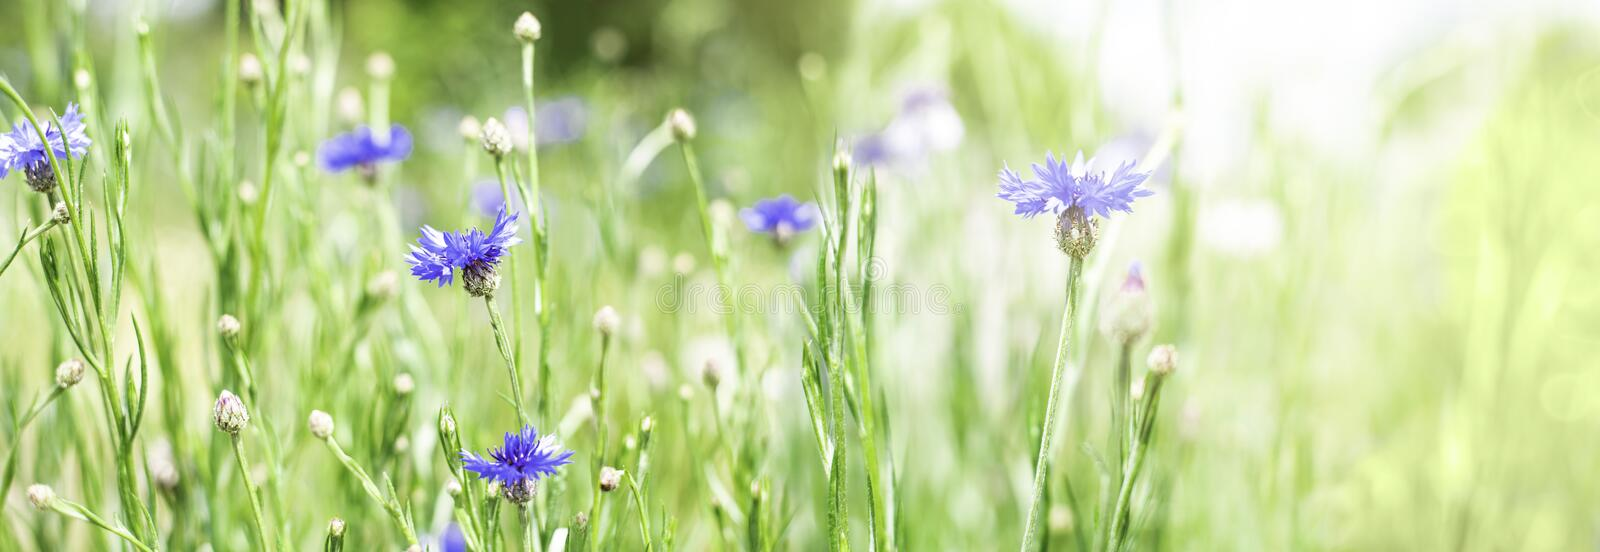 Meadow flowers on a sunny summer day. royalty free stock photography